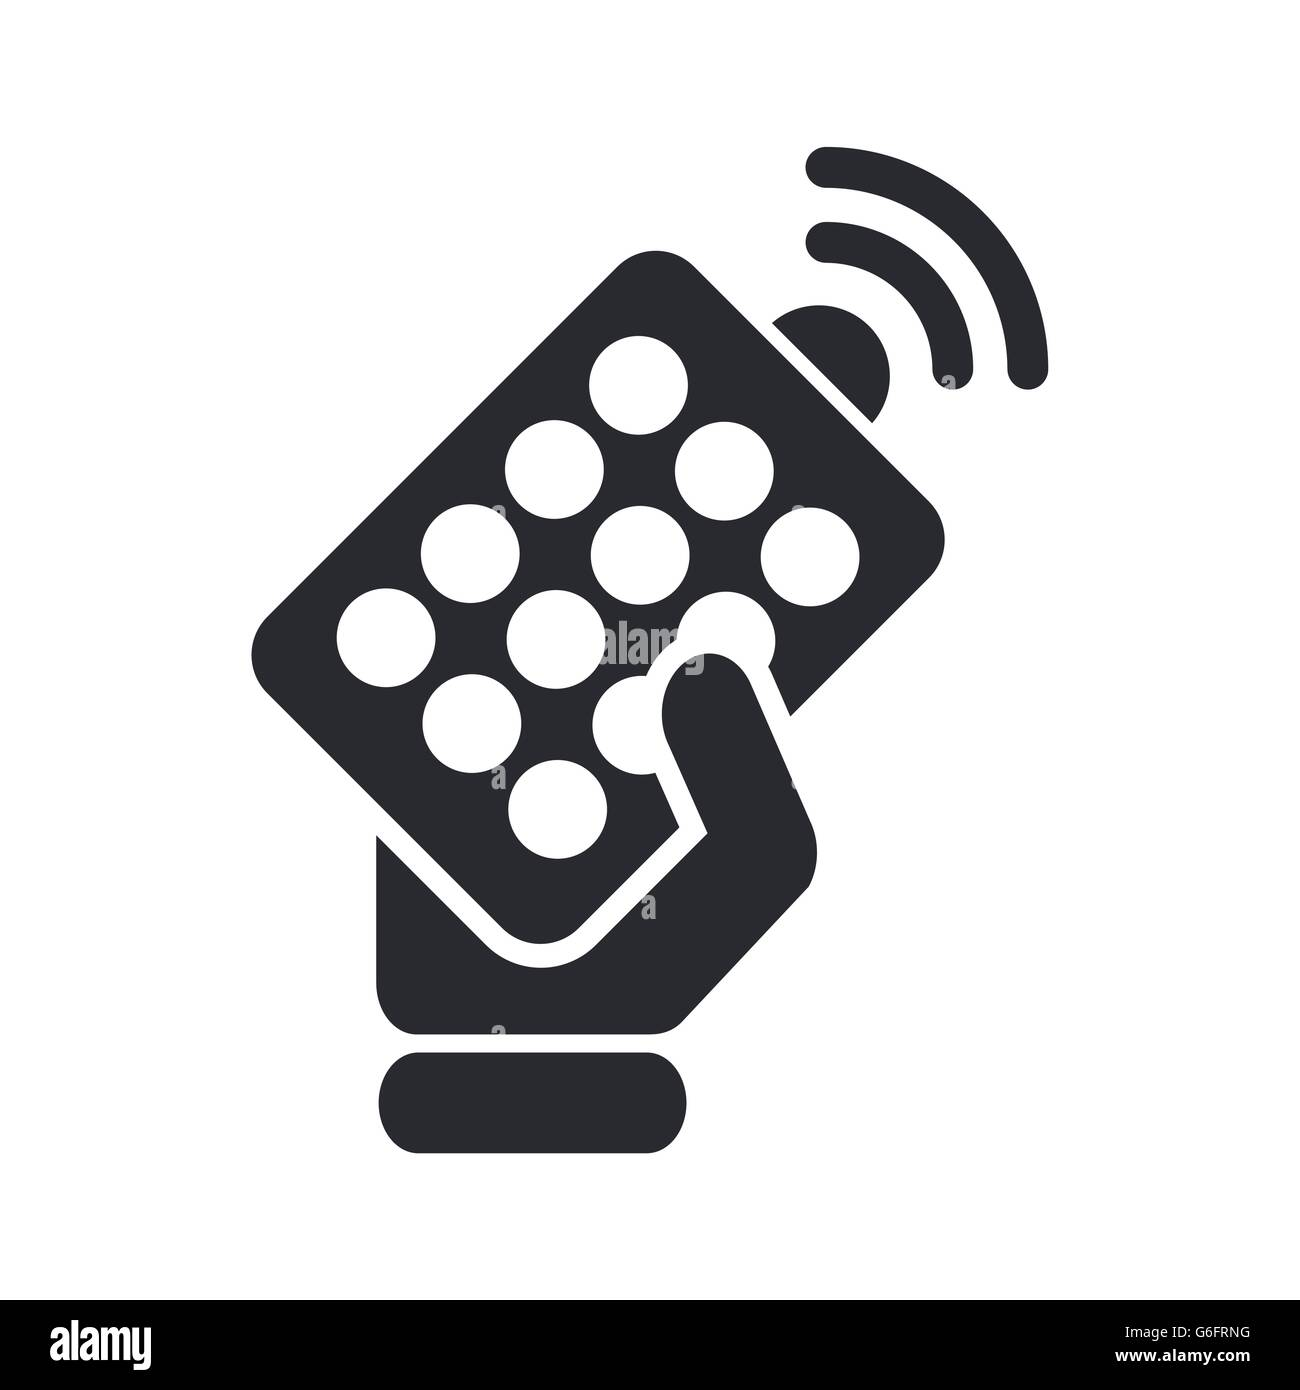 Vector illustration of single isolated remote icon - Stock Image